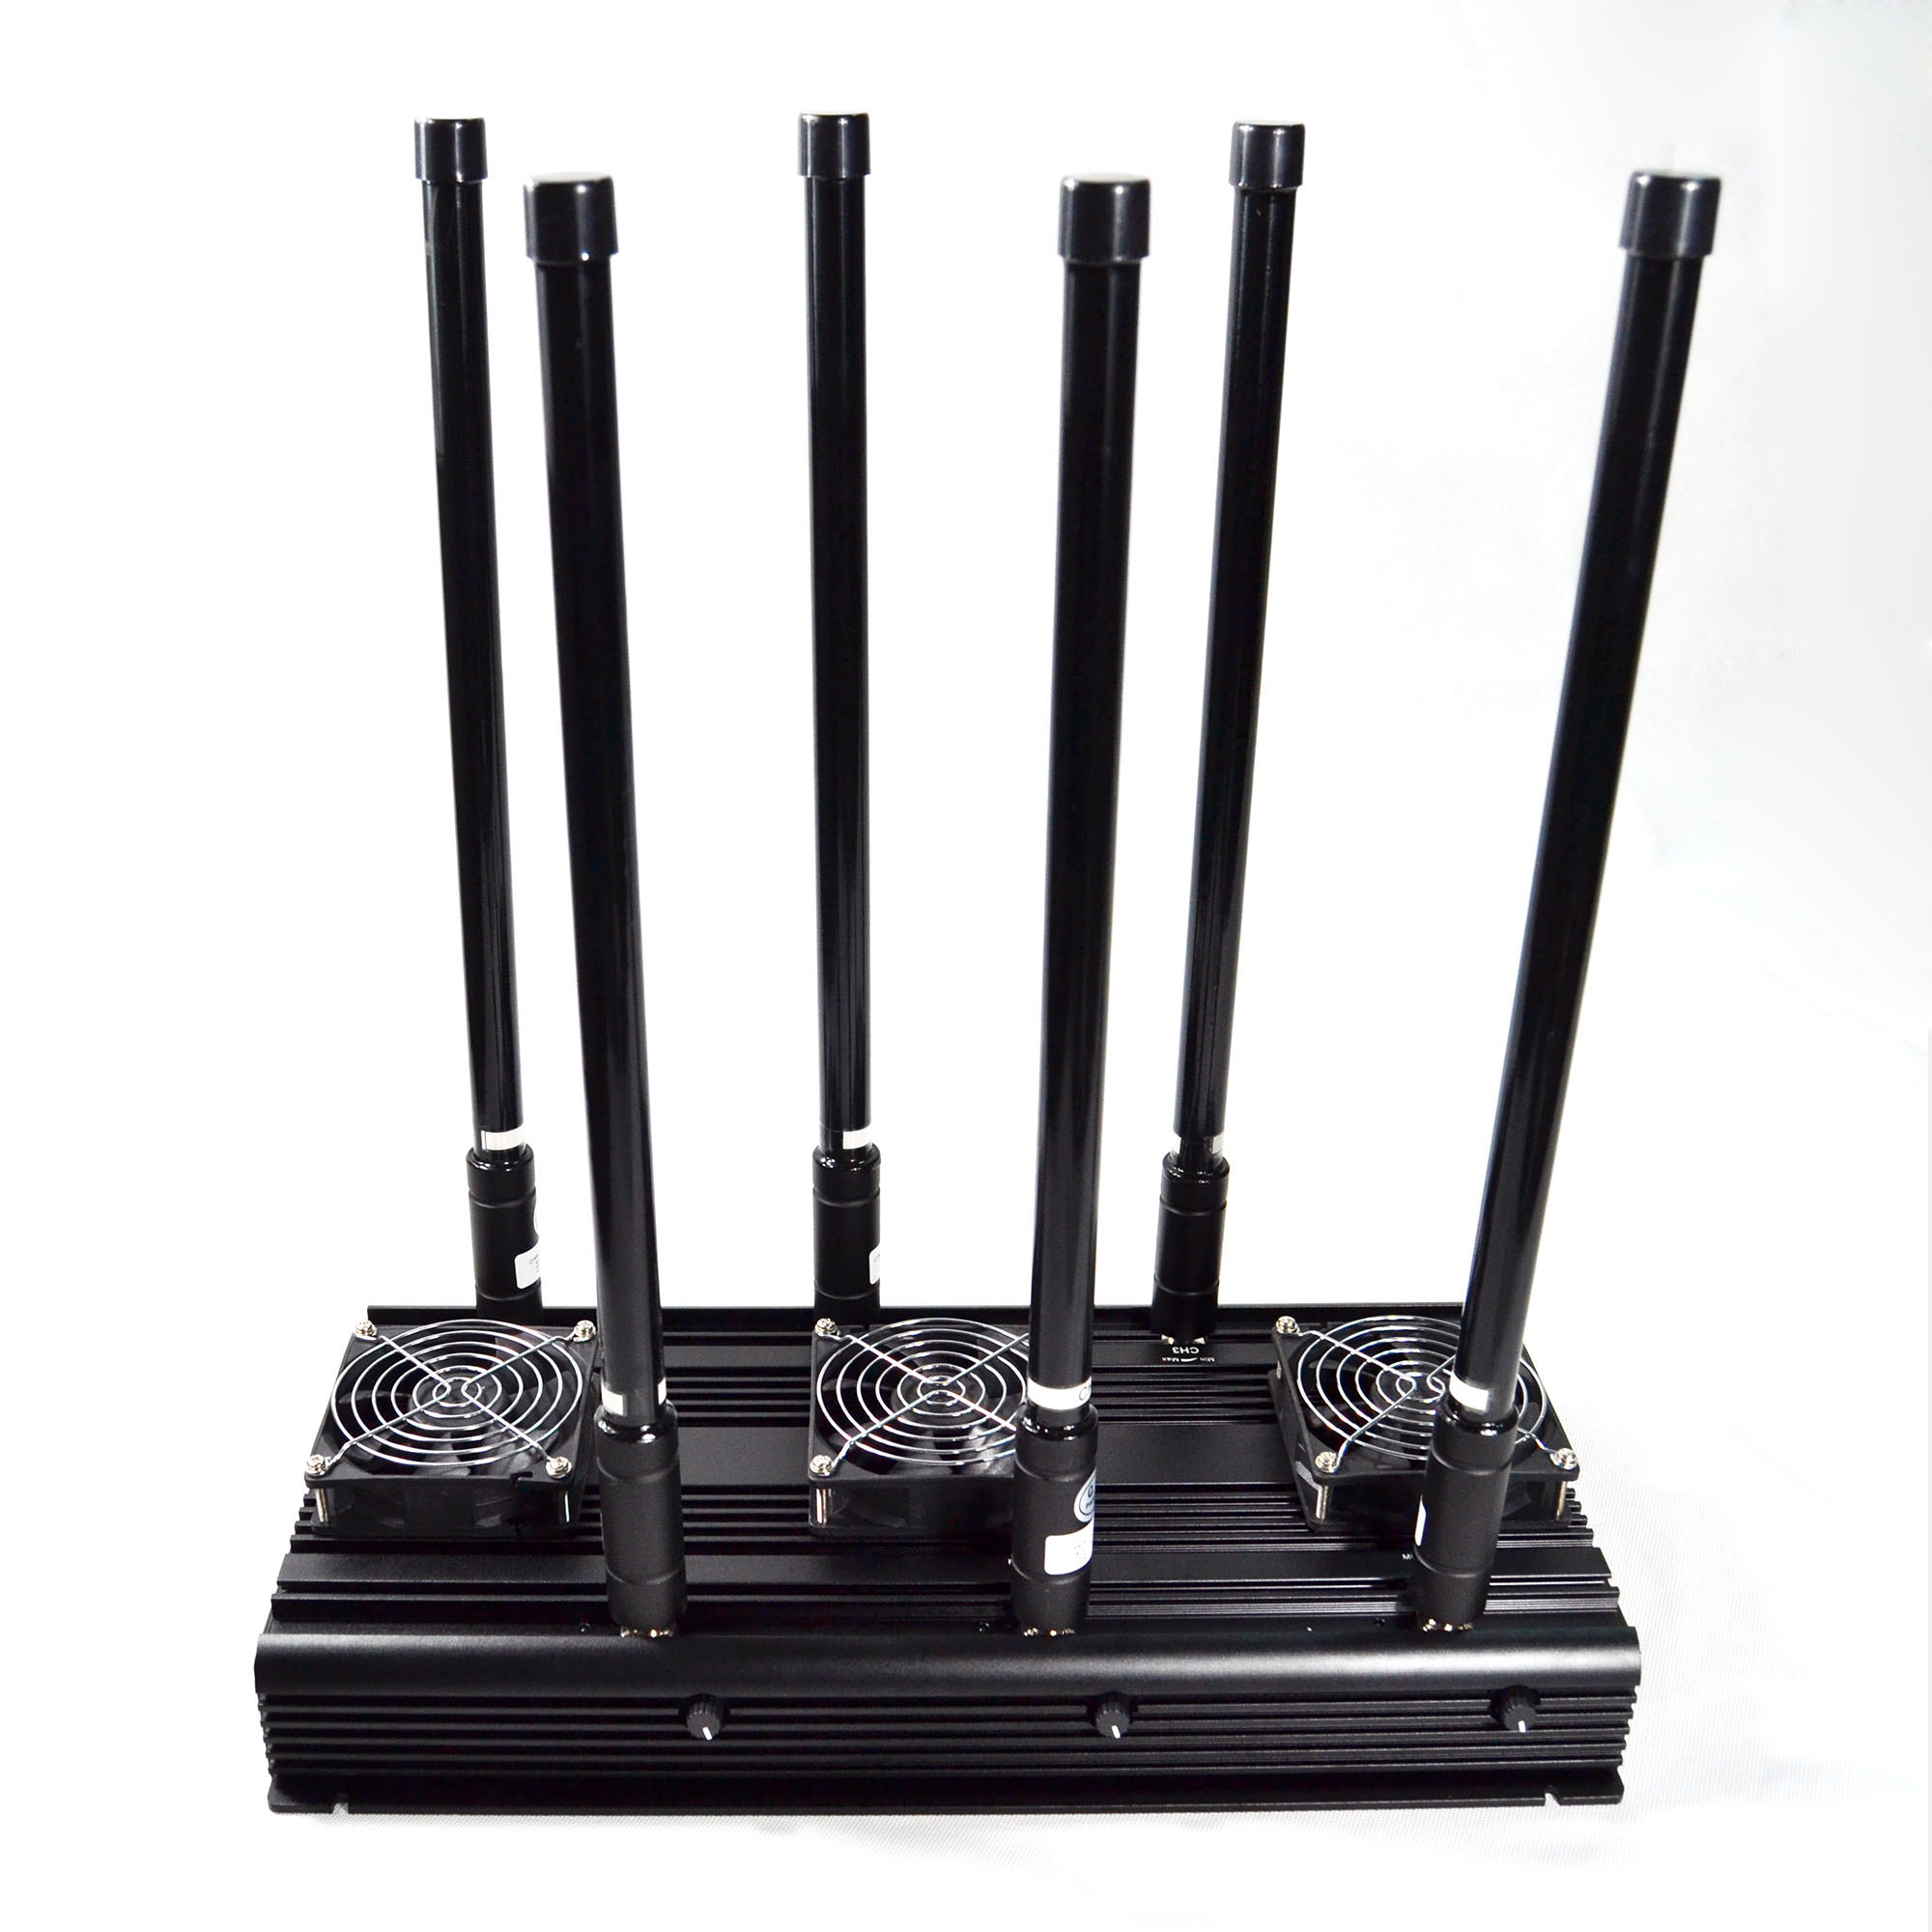 Wireless Signal Blockers